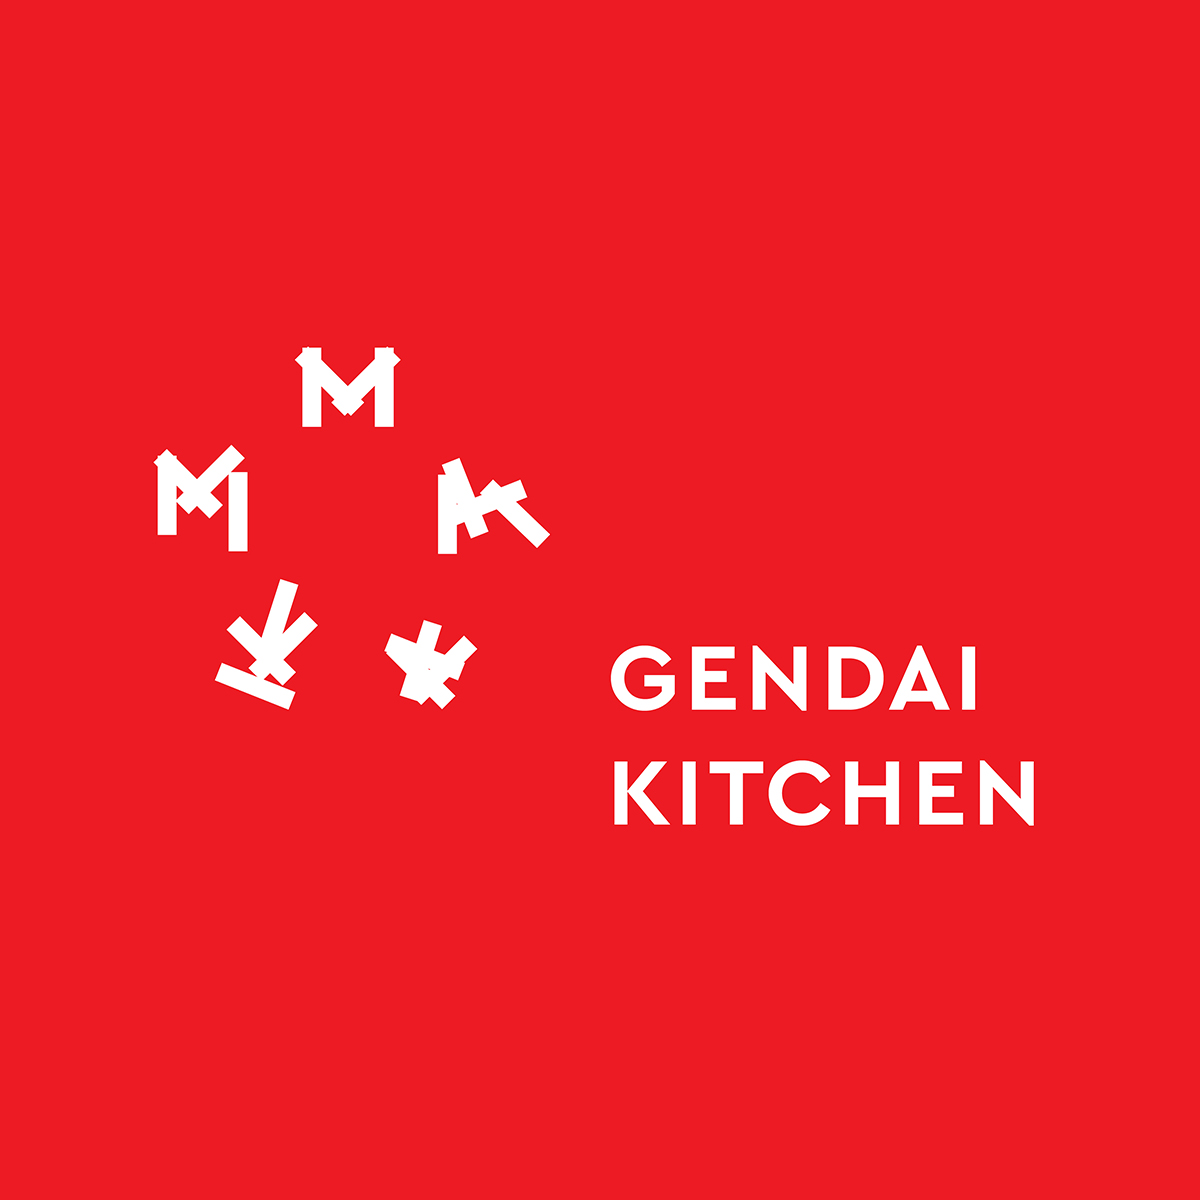 MMMMM...Gendai Kitchen